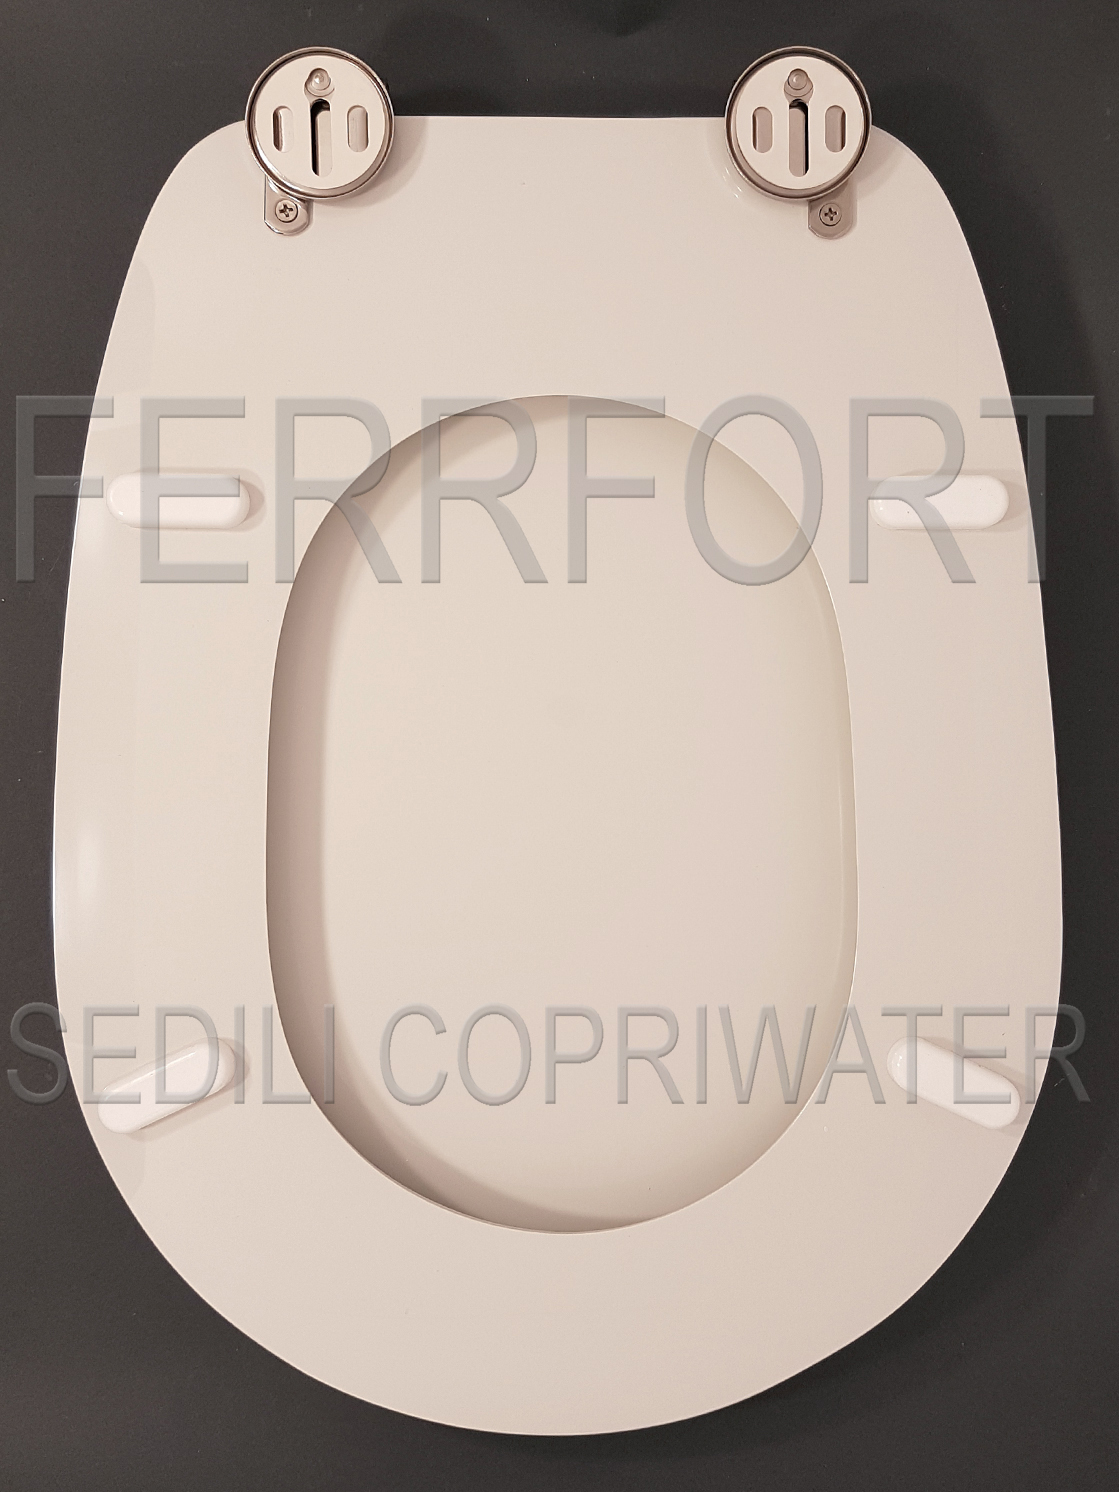 Sedile Copriwater Ideal Standard.Sedile Copriwater Liuto Ideal Standard Bianco